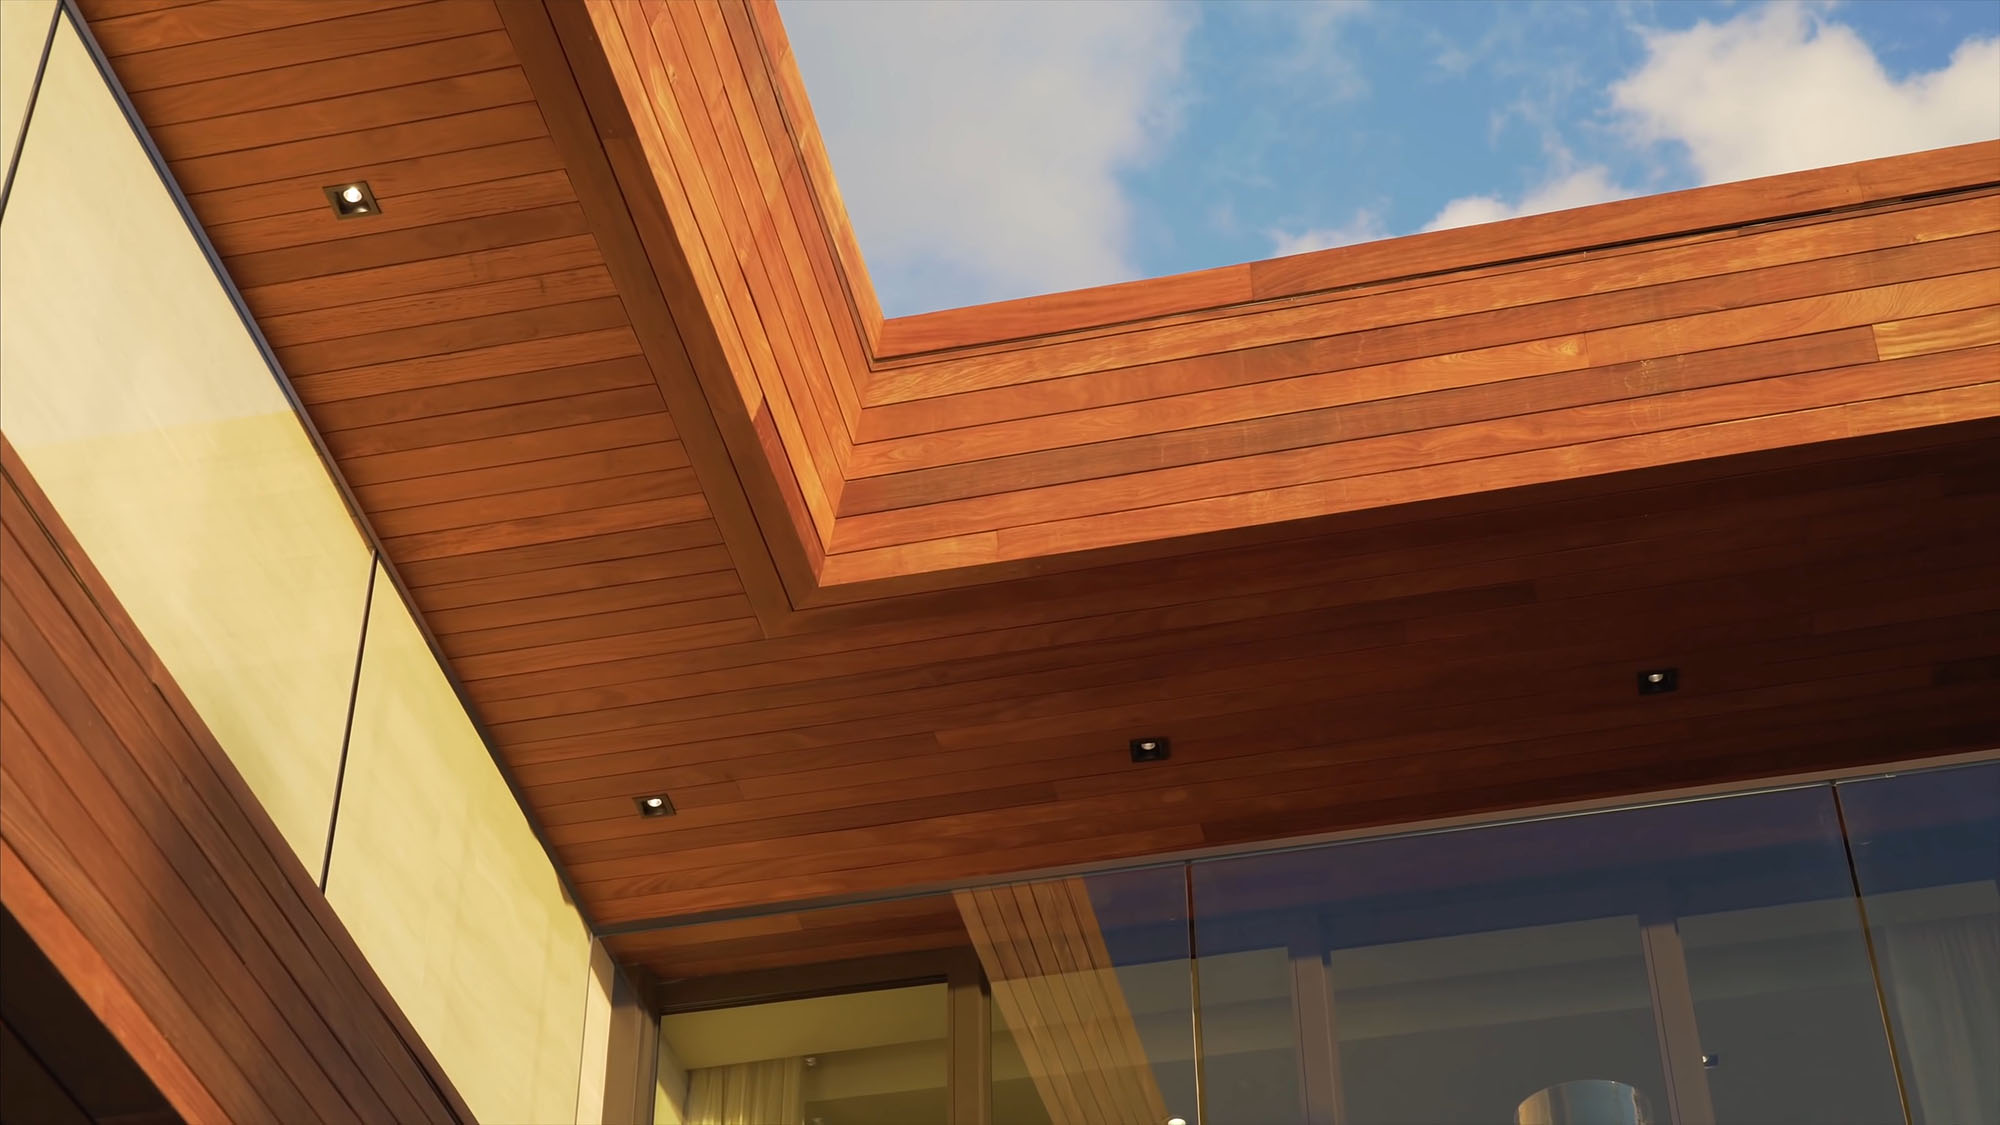 Ipe wood used as a siding and soffit material with square recessed LED lighting.